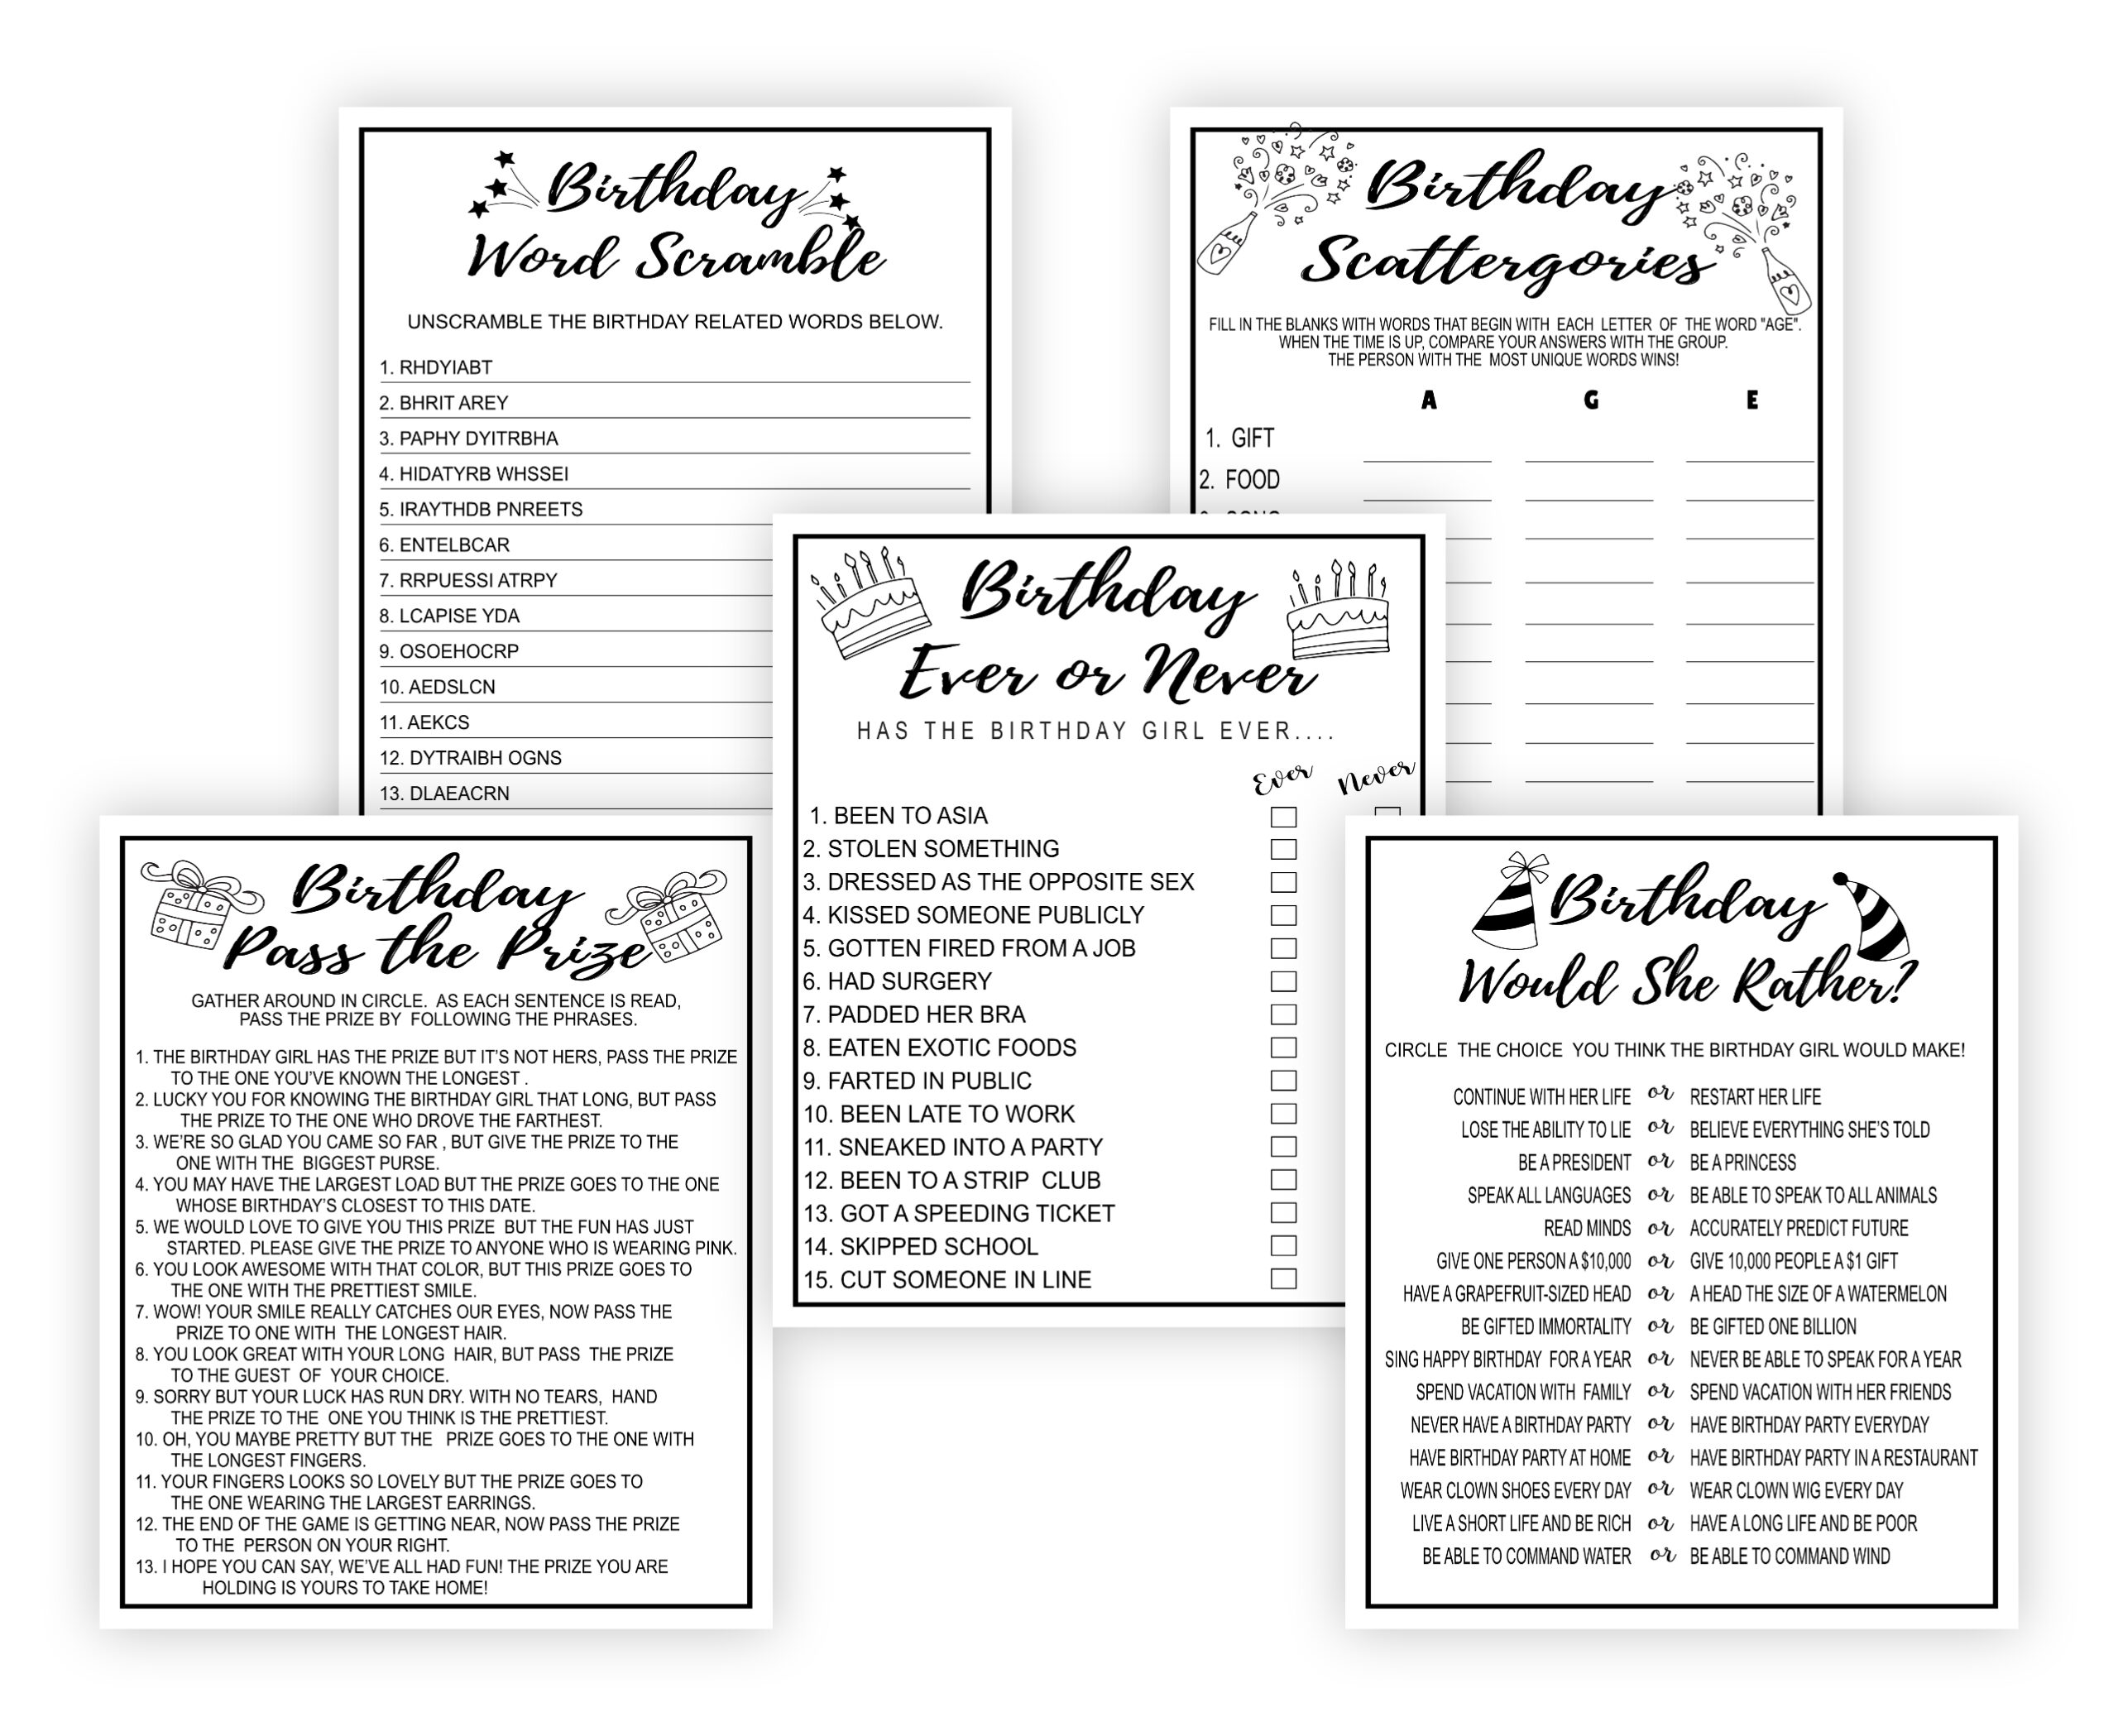 BIRTHDAY GAMES 15 PRINTABLE BIRTHDAY PARTY GAMES BUNDLE Adult Birthday Party Games